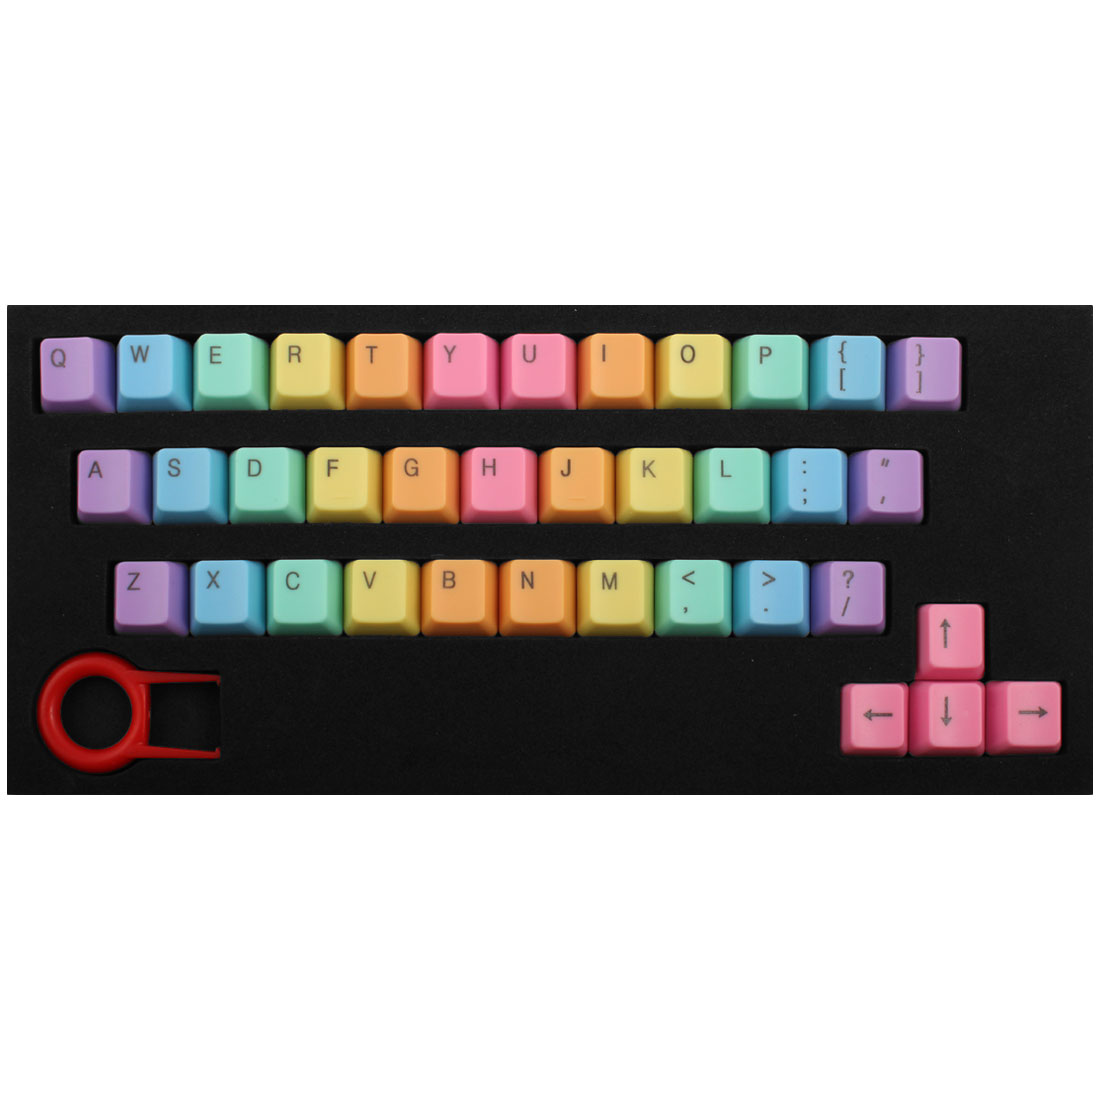 ABS 37 Keys Backlight Rainbow Keycaps Pink for Mechanical Keyboard